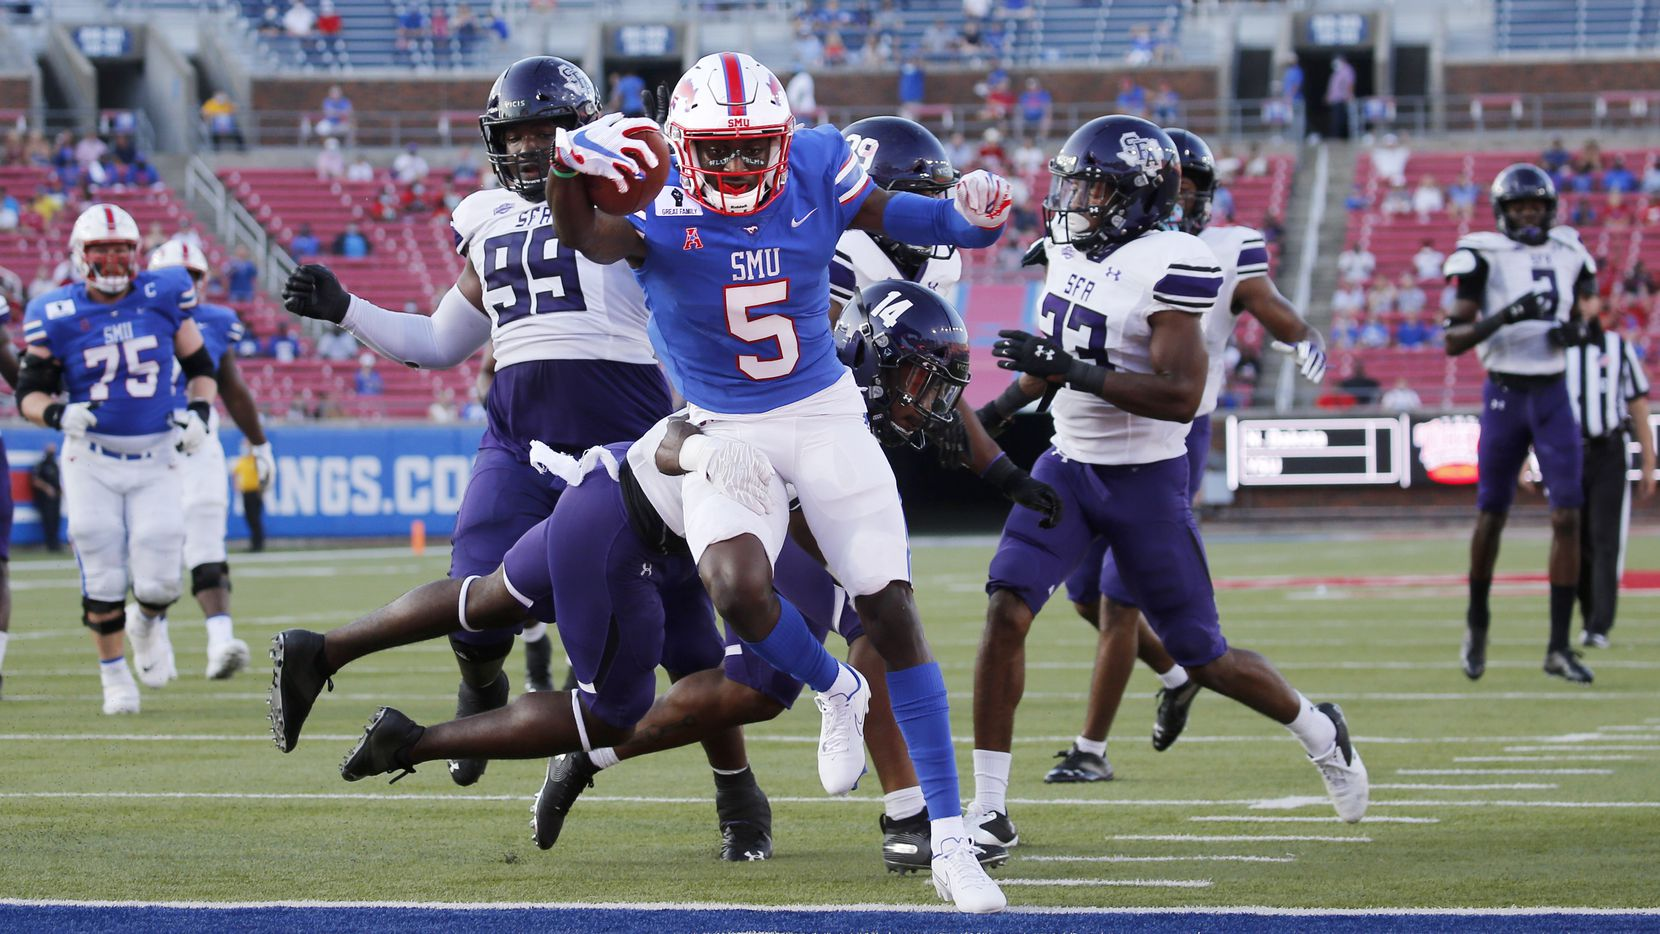 Southern Methodist Mustangs wide receiver Danny Gray (5) scores a touchdown as Stephen F. Austin Lumberjacks defensive back Kris McCune (14) fails to stop him during the first half of their home opener at Ford Stadium in Dallas, on Saturday, September 26, 2020. (Vernon Bryant/The Dallas Morning News)